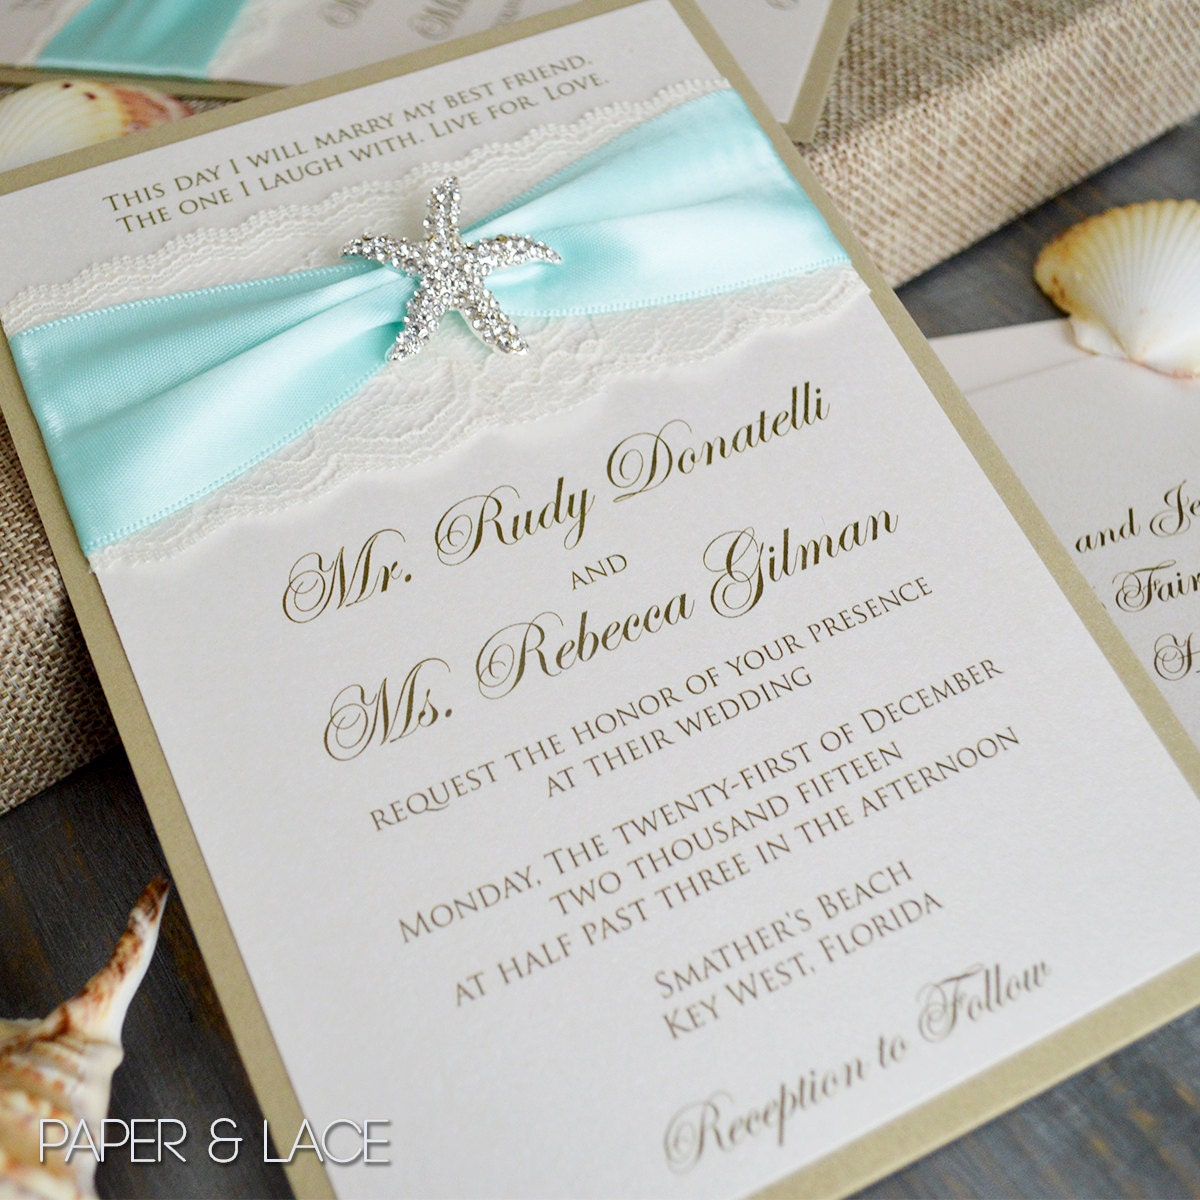 creating my own wedding invitations - Picture Ideas References